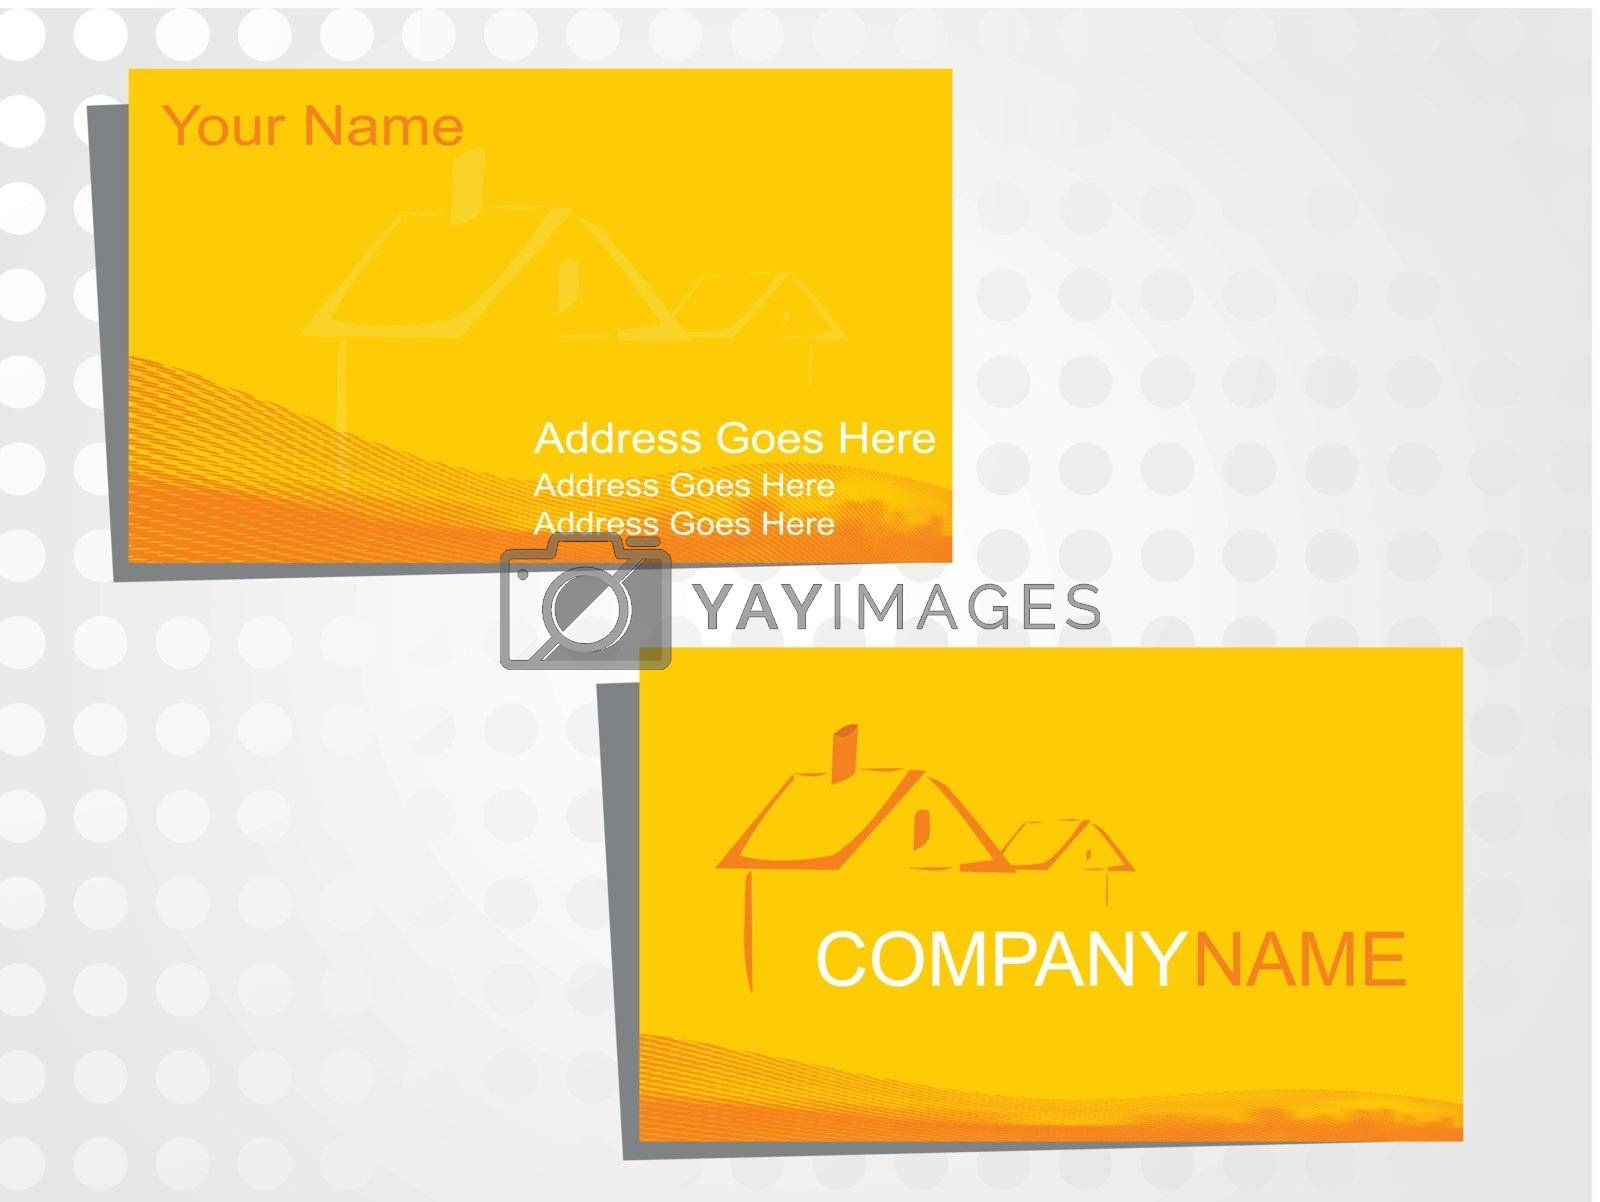 real state business card with logo_37